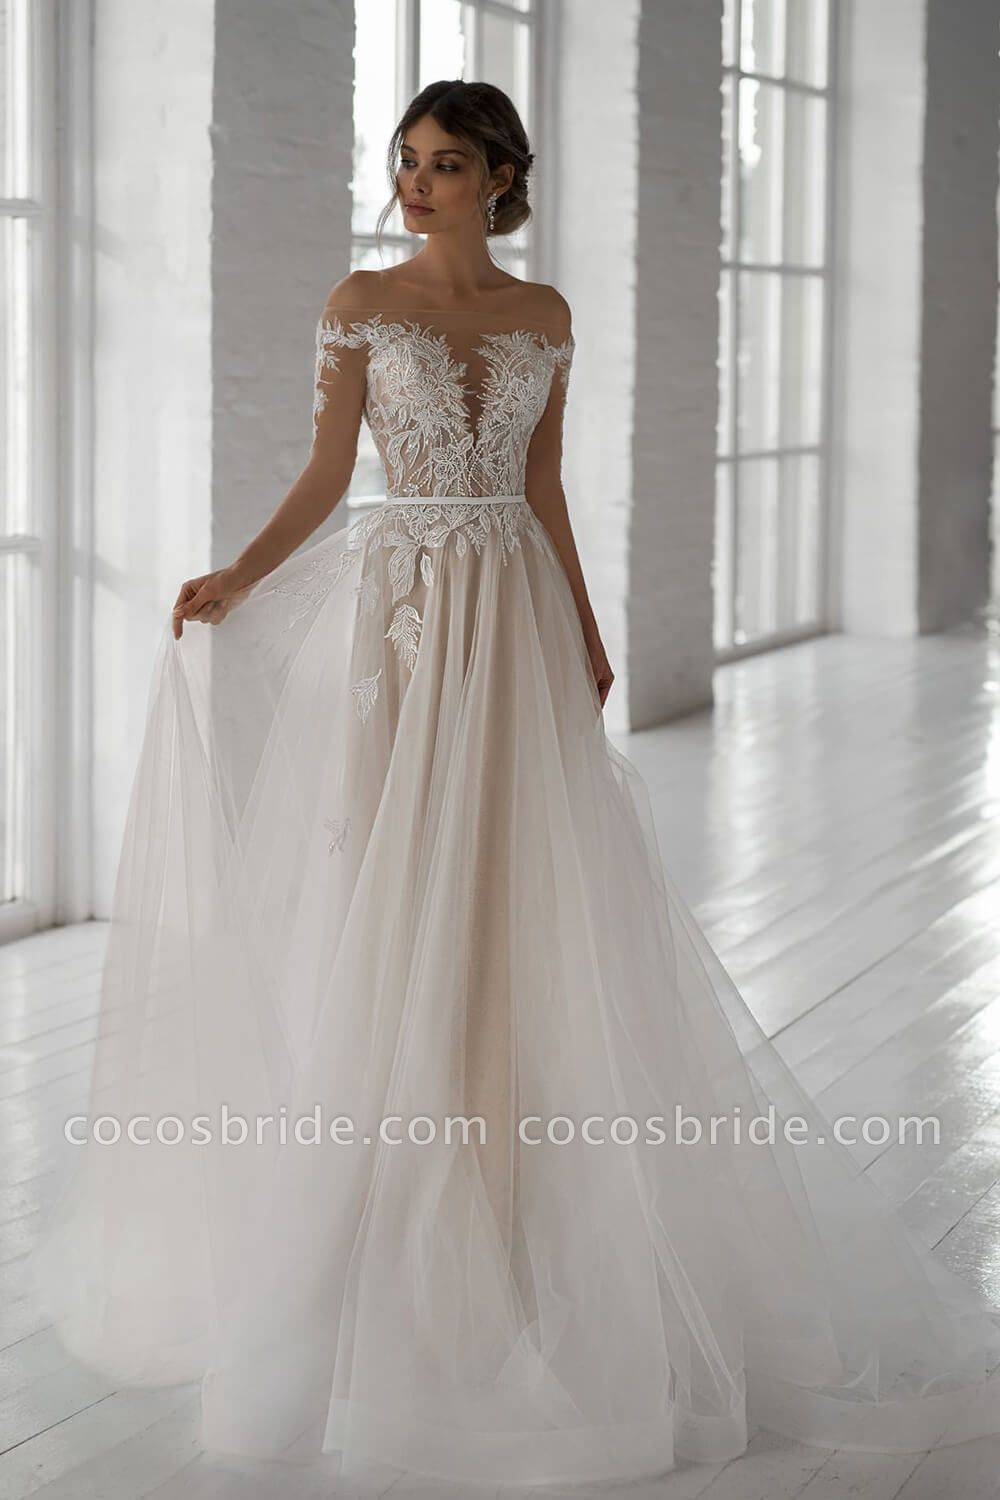 Pin on Wedding & Party Dresses at Cocosbride